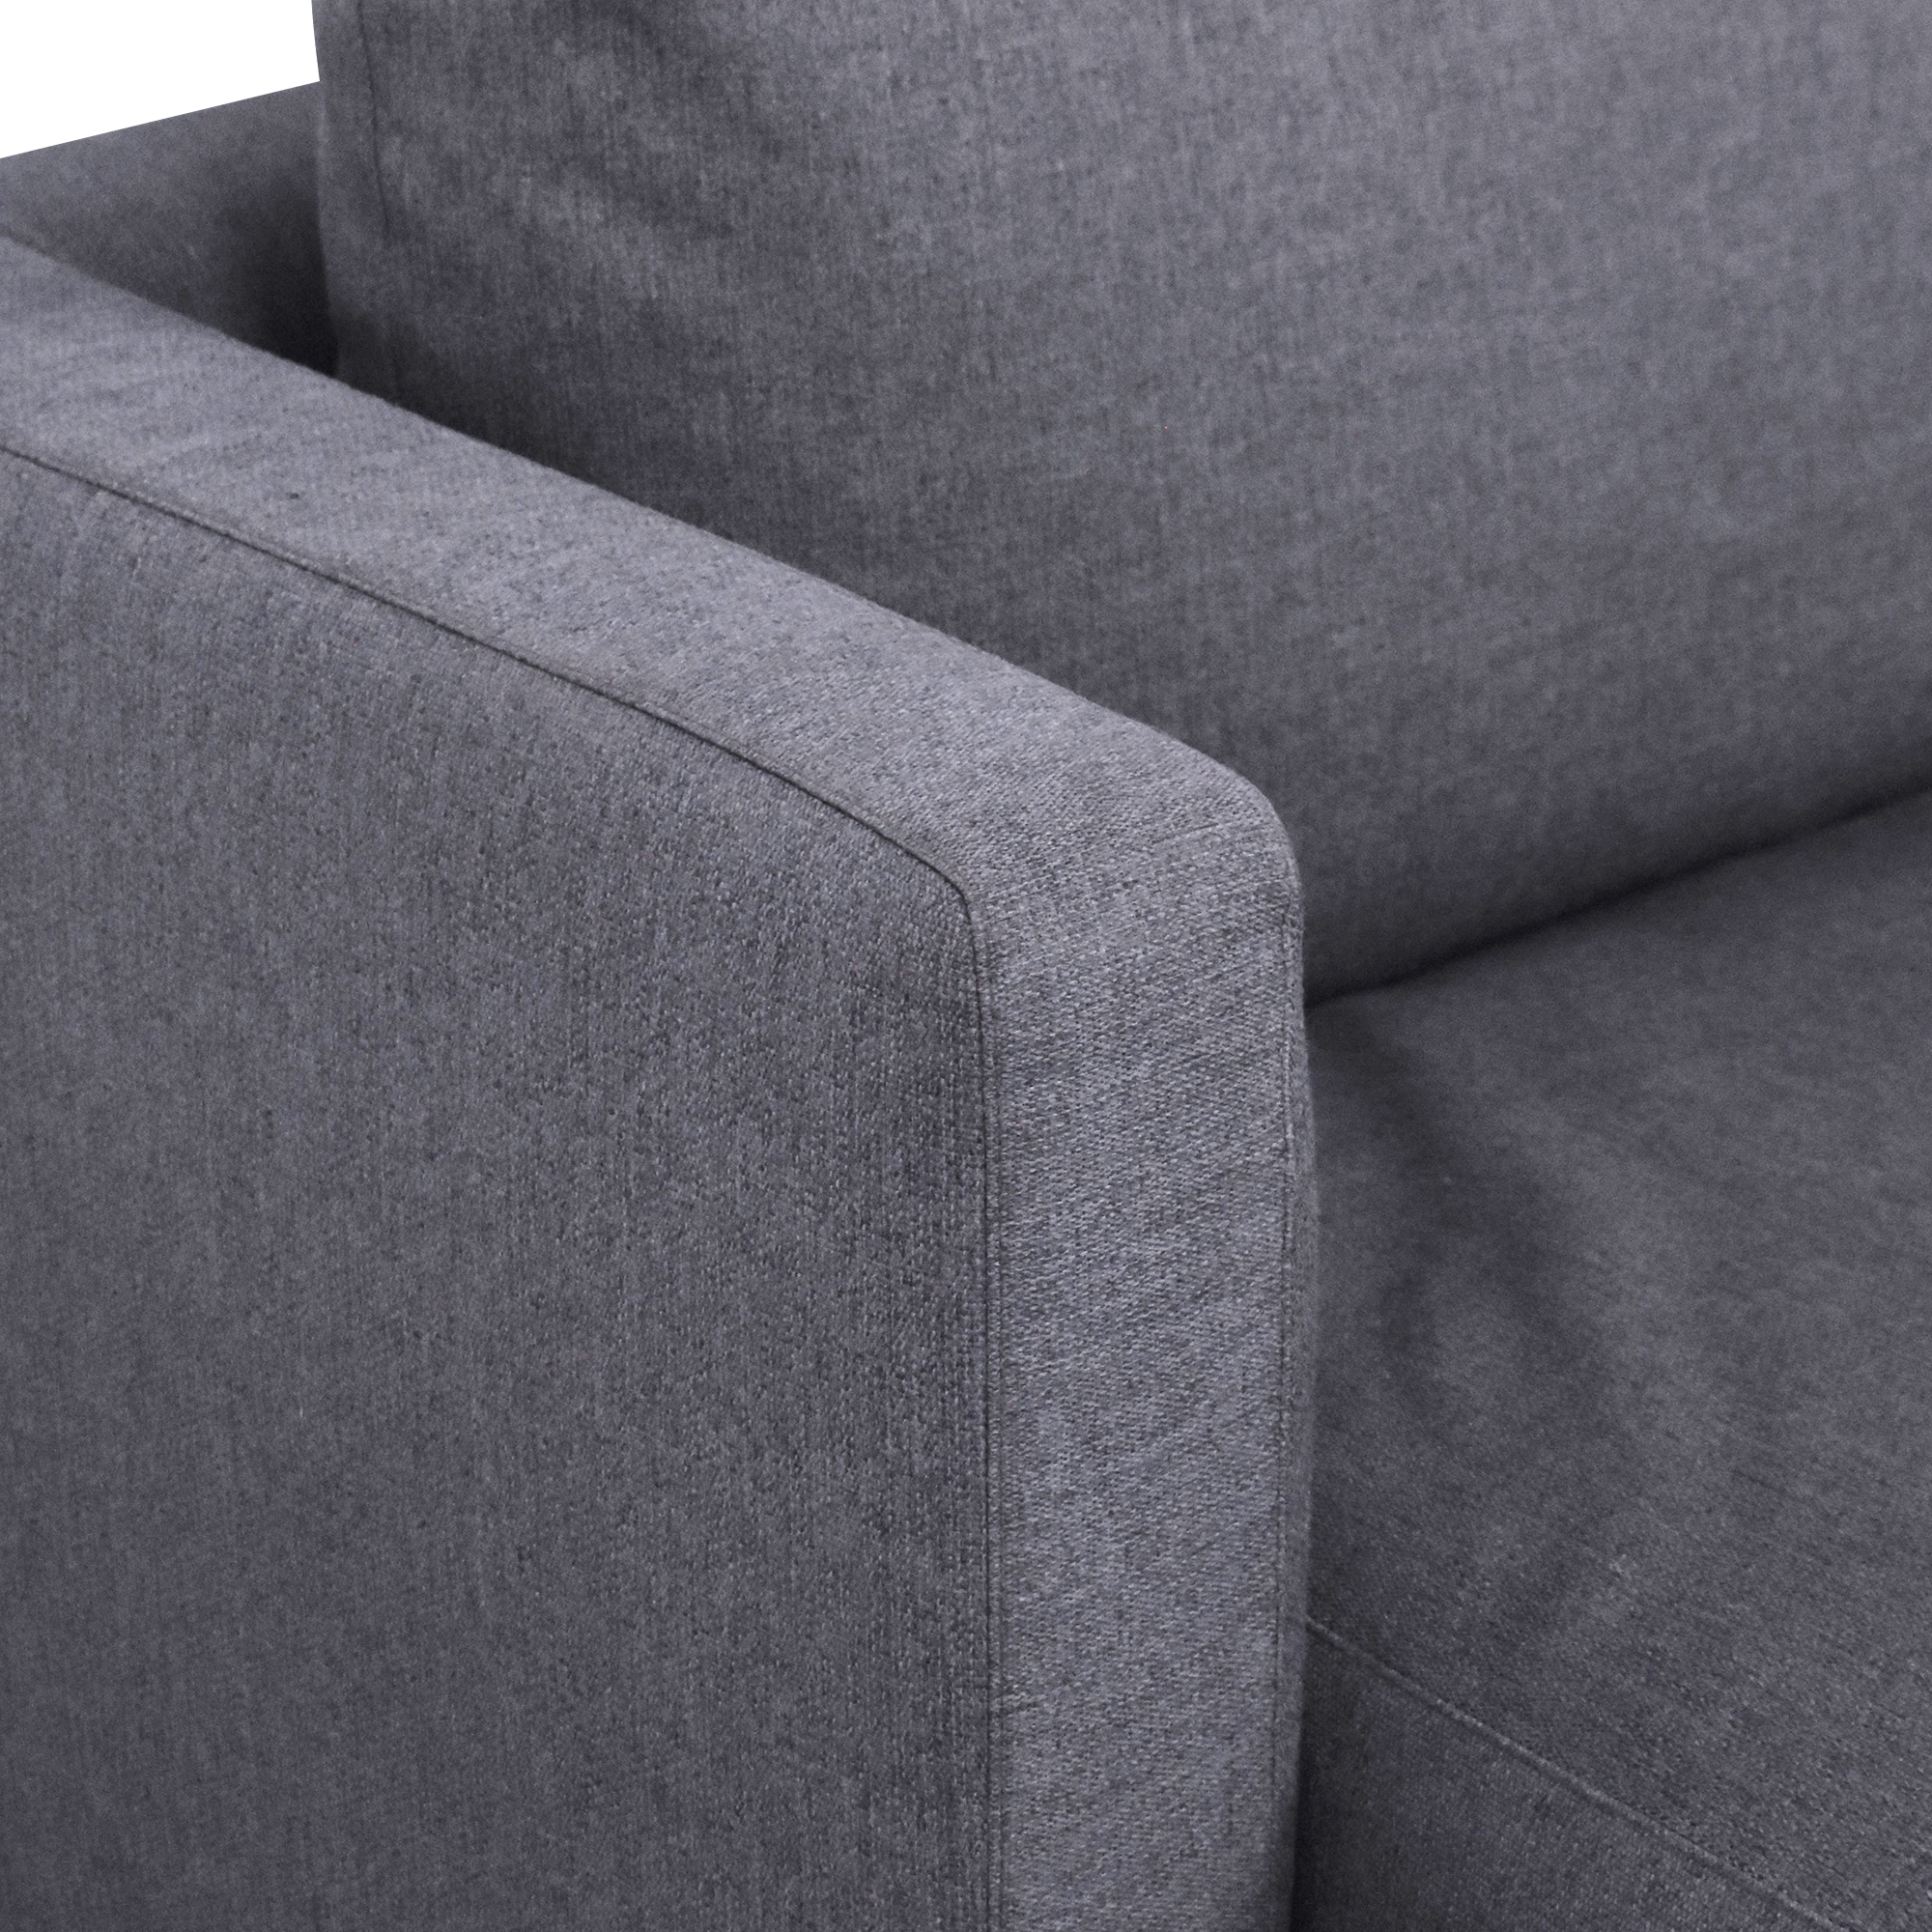 Camerich Camerich Lazy Time Chaise Sectional Sofa used